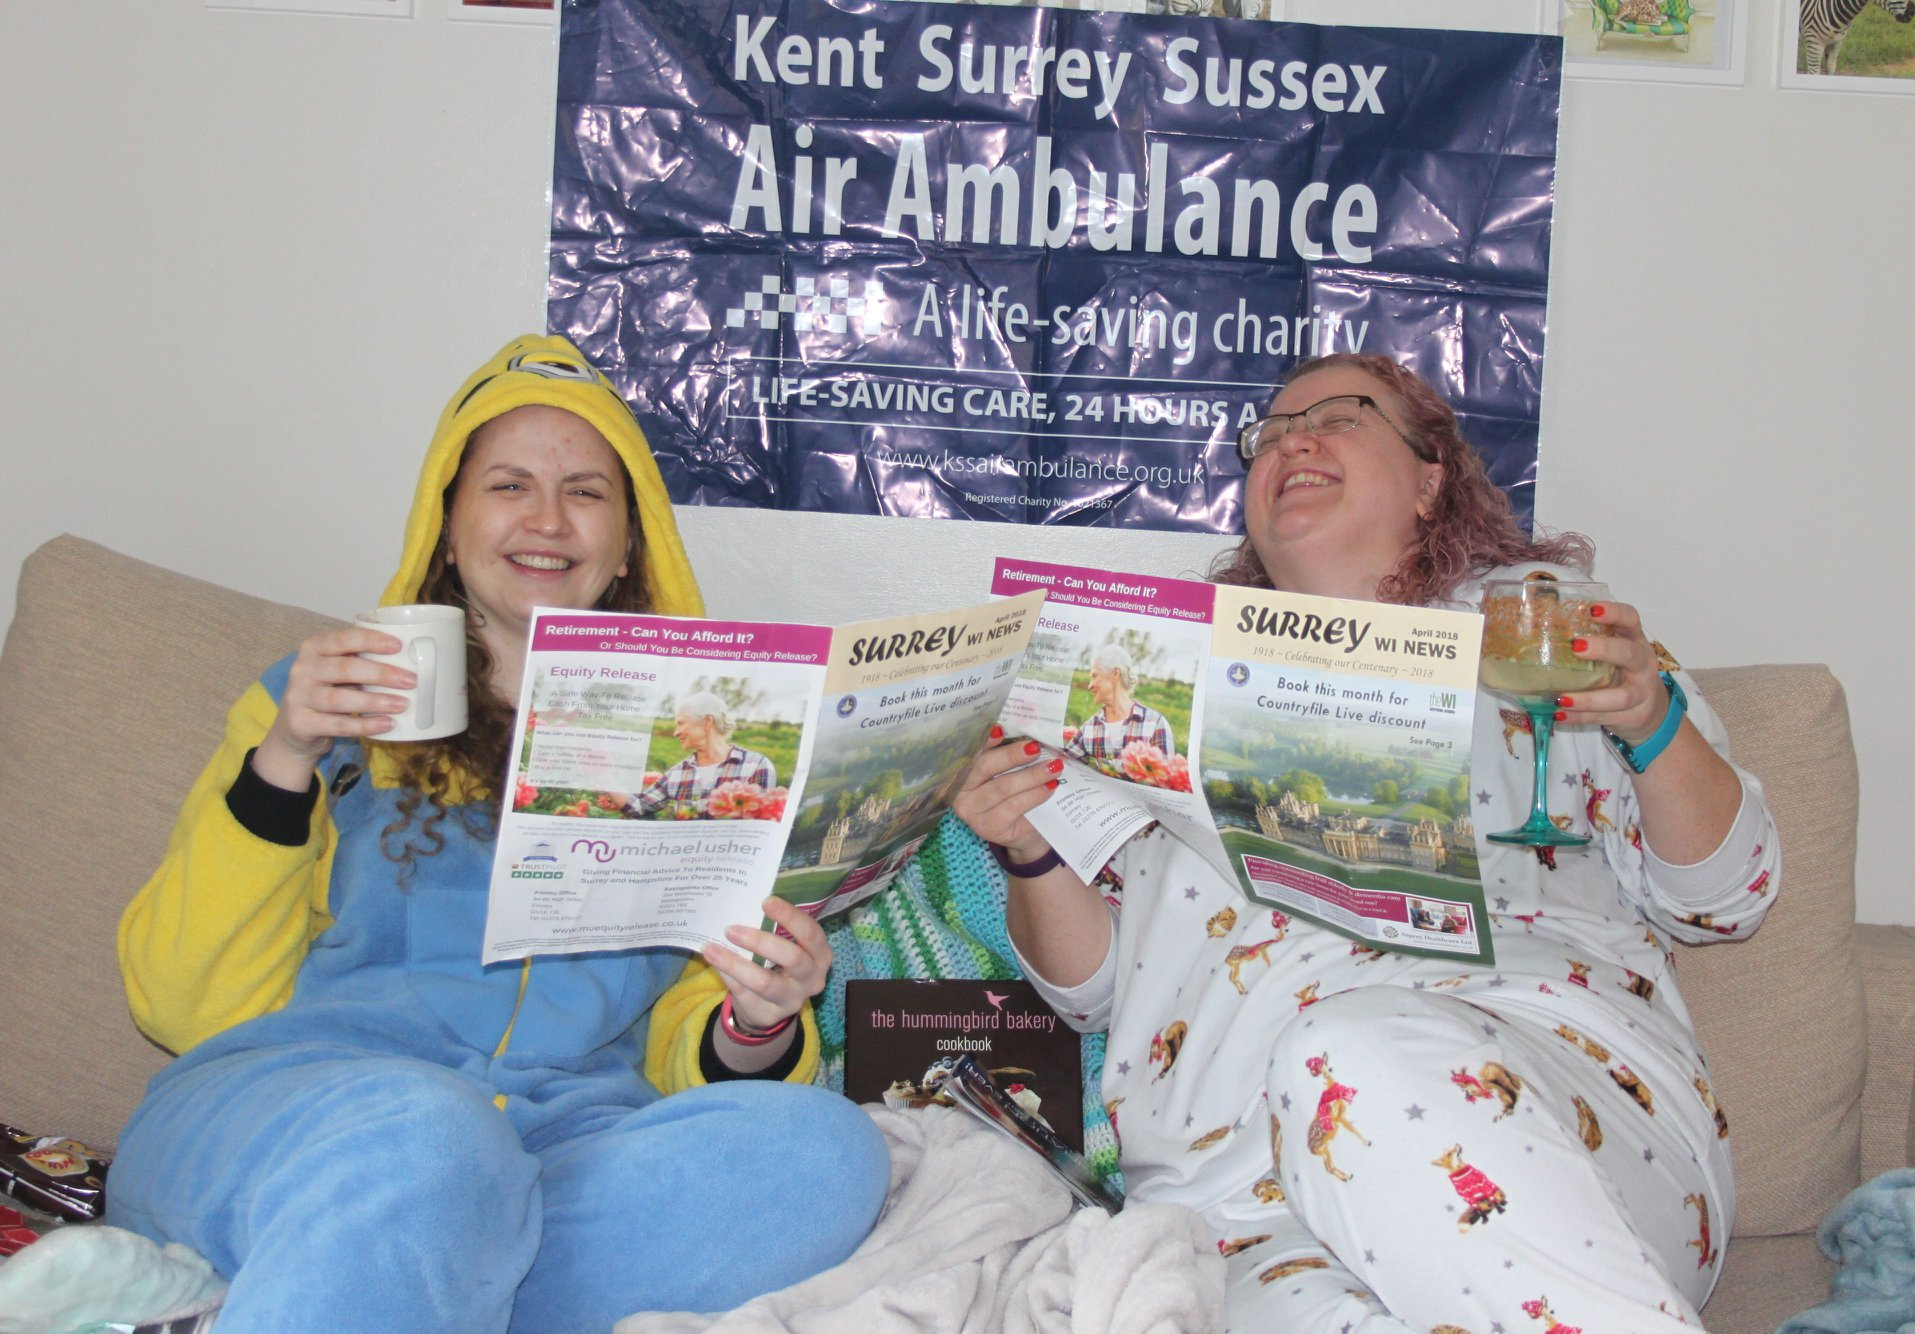 President and Vice-President of Weybridge WI, Sports Challenge Fundraiser for Kent, Surrey, Sussex Air Ambulance' (KSSAA) their Charity of the Year